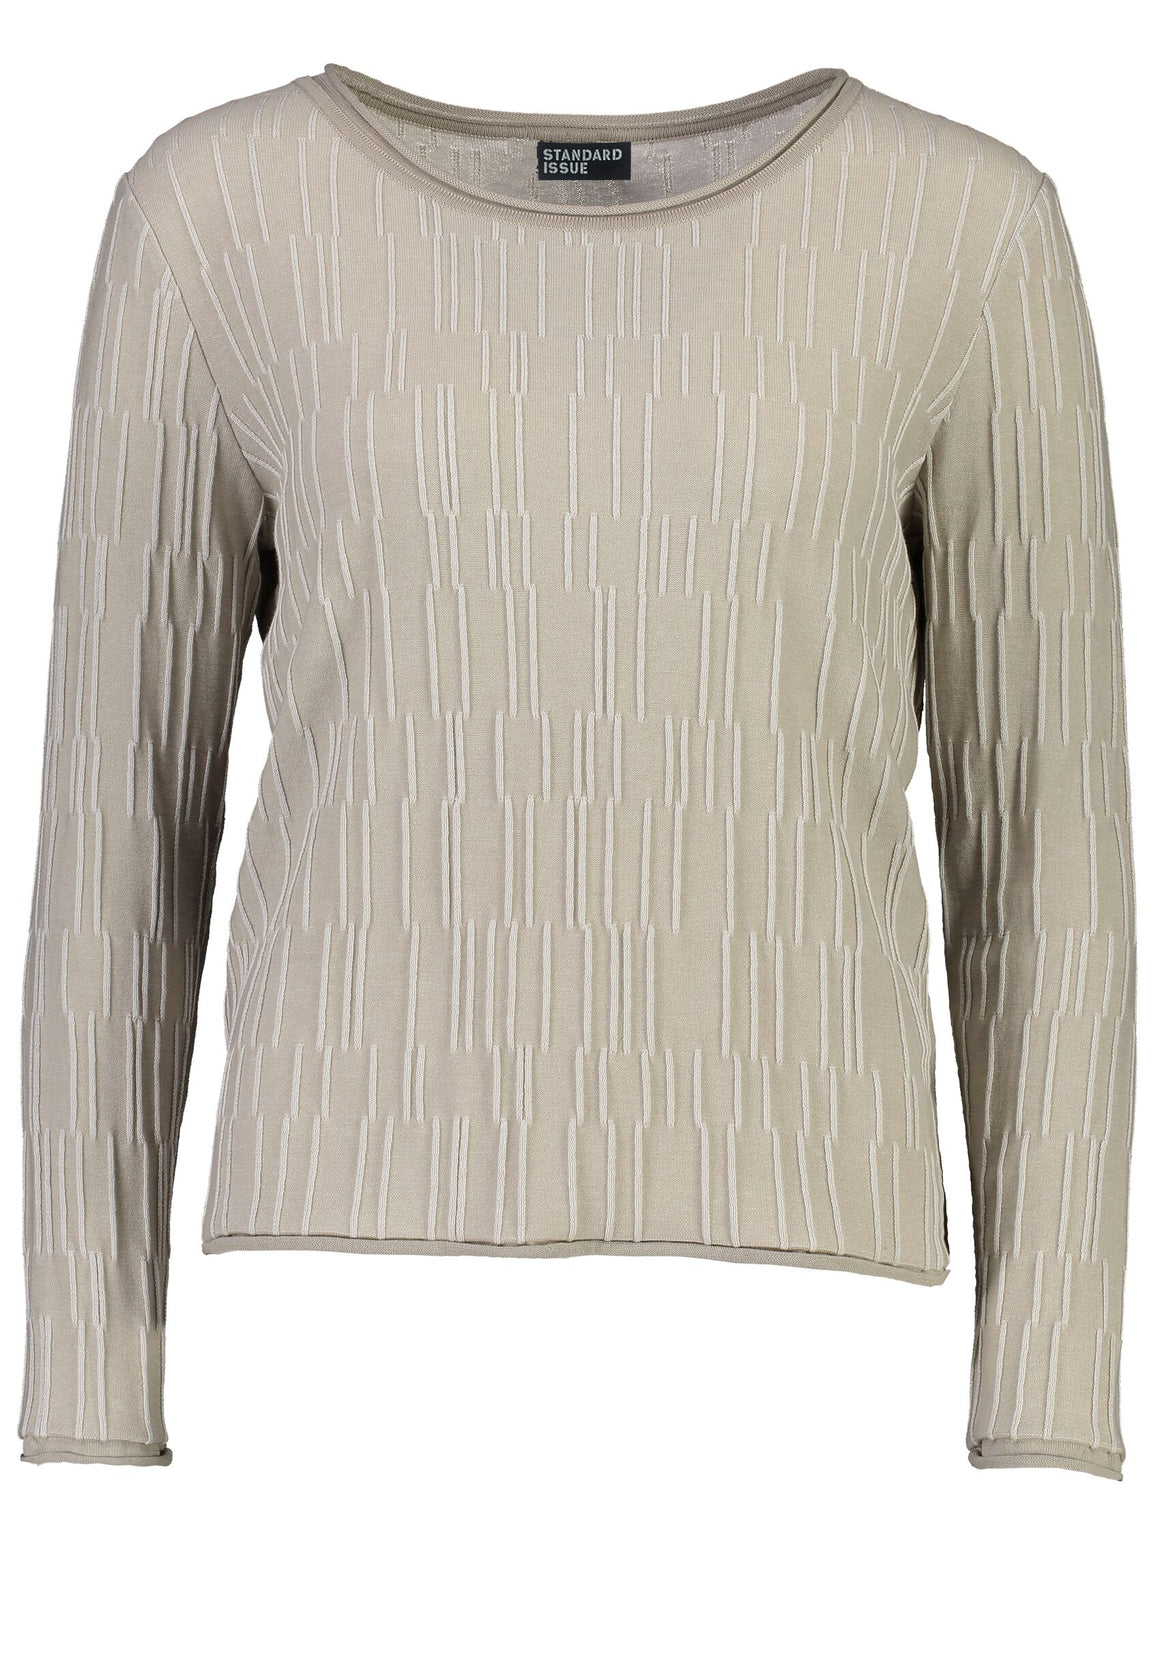 Standard Issue Terrace Sweater - Pebble/White